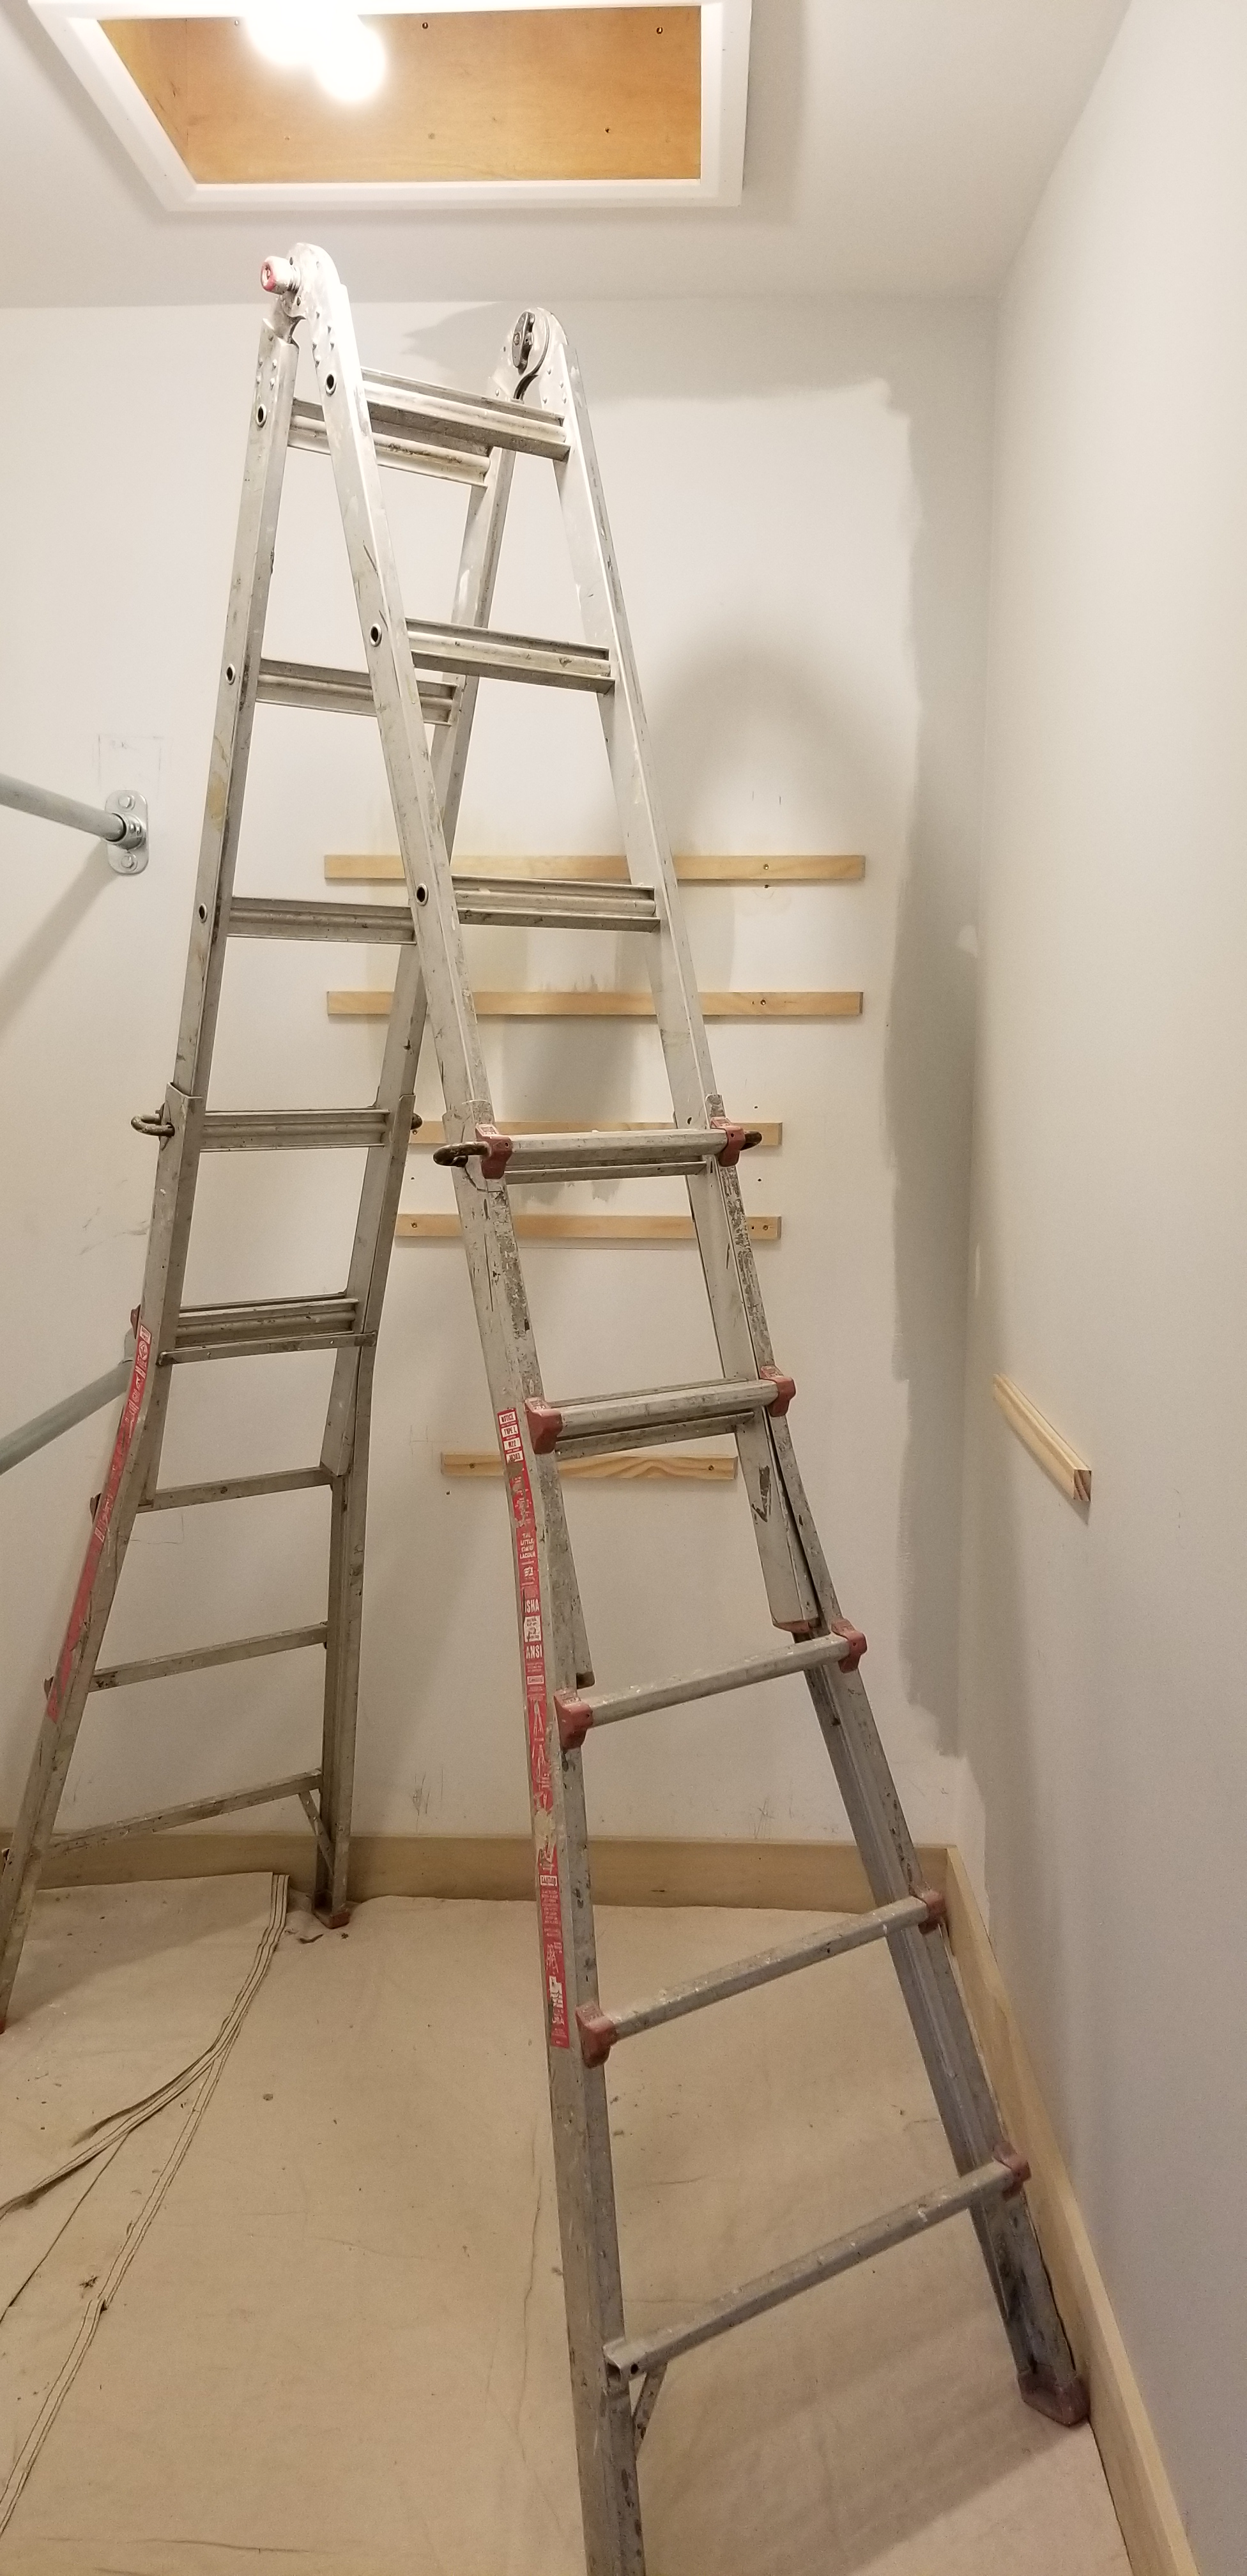 ladder in wic